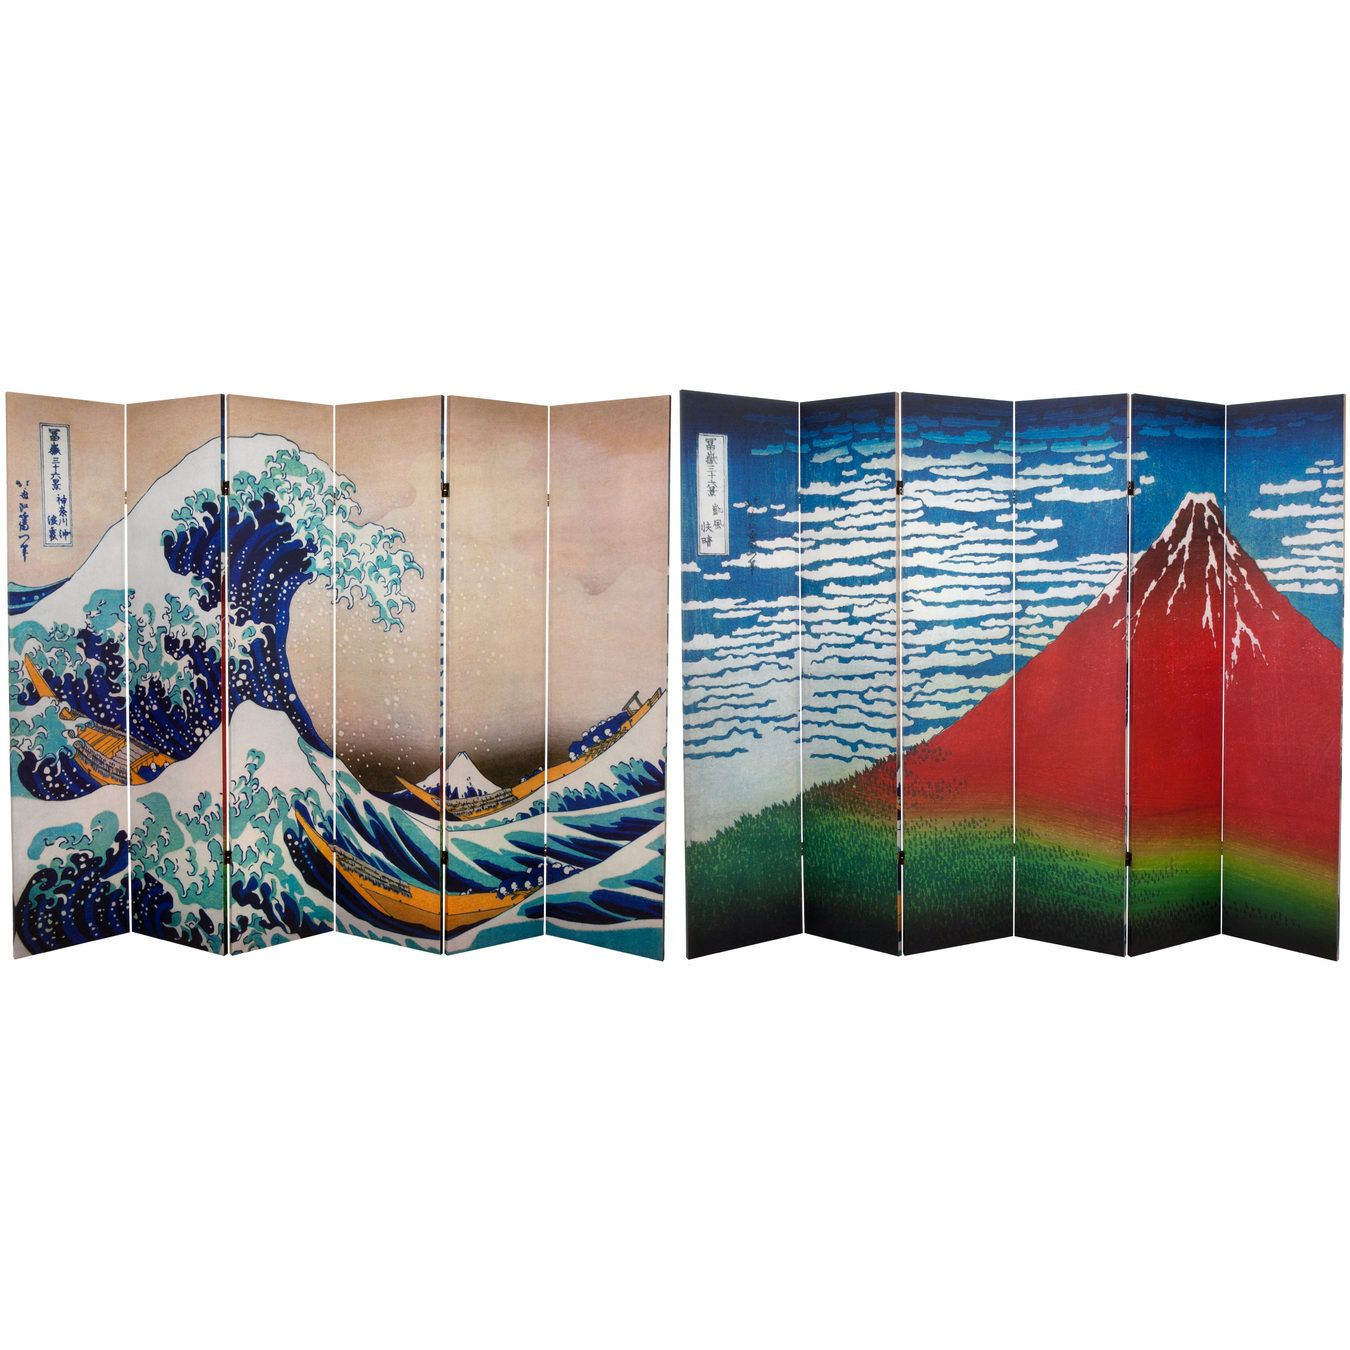 6 Ft. Tall Double Sided Hokusai Room Divider   Great Wave/Red Fuji